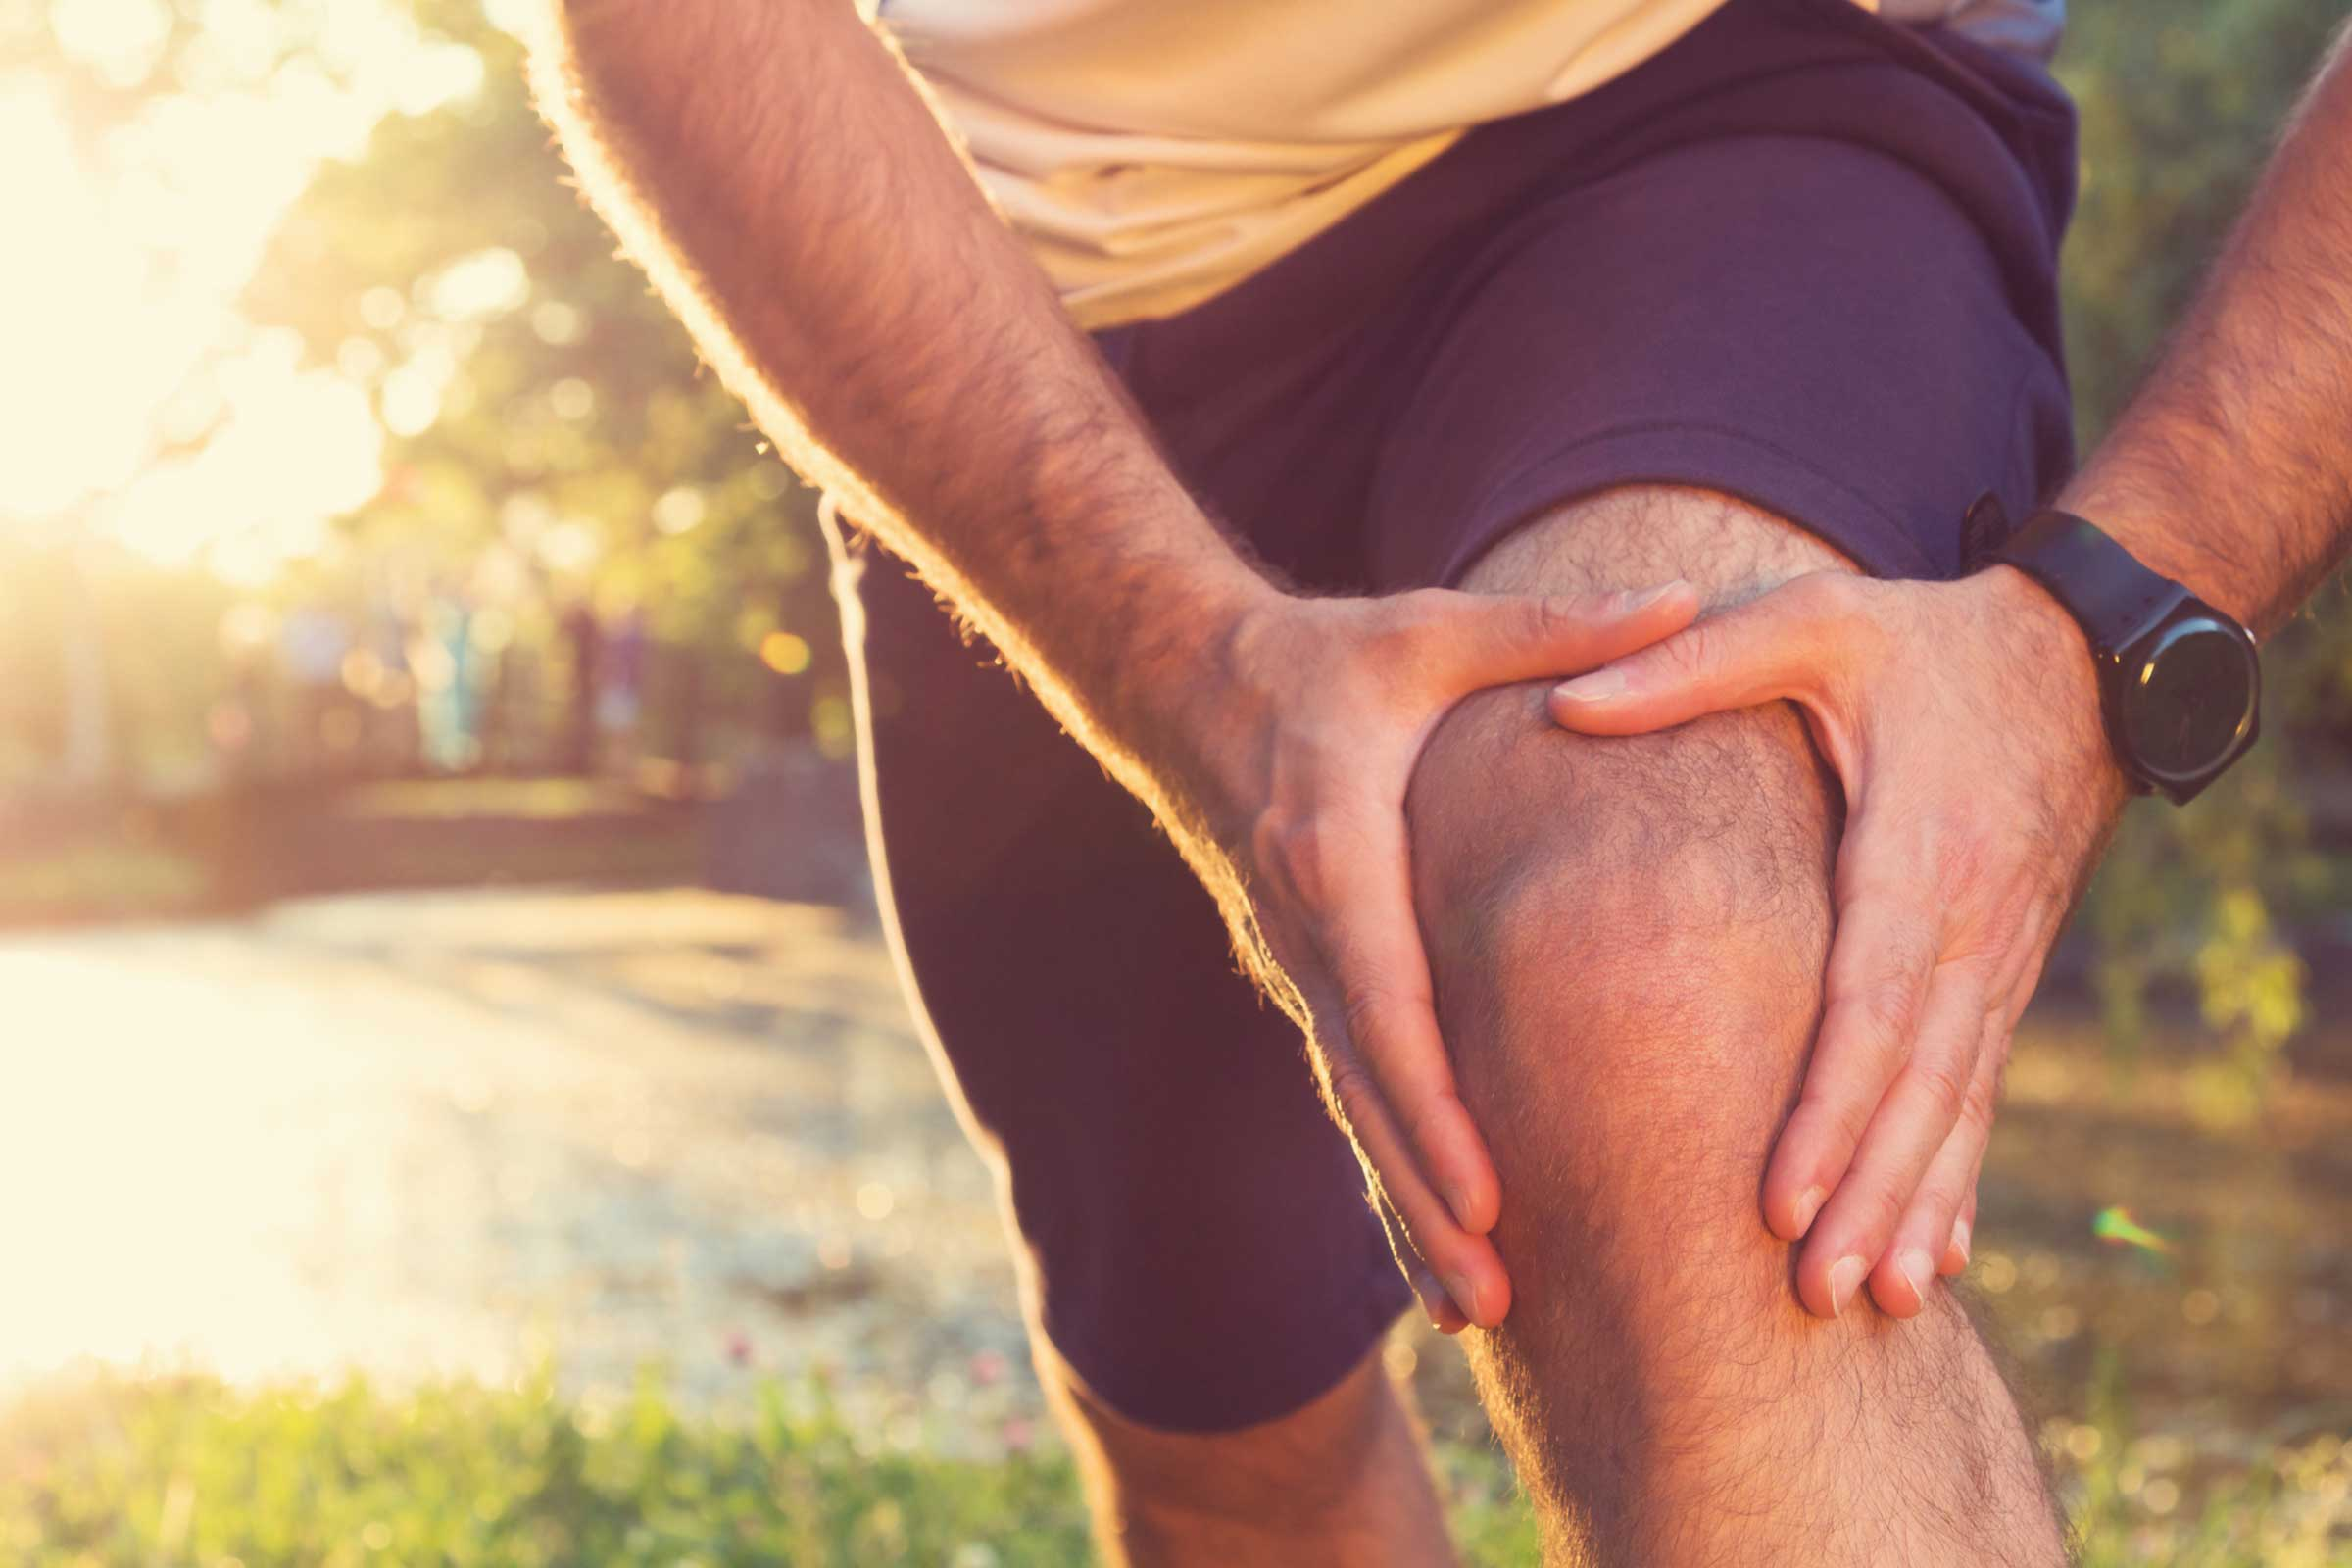 How To Treat Old Leg Pain Without Medicine